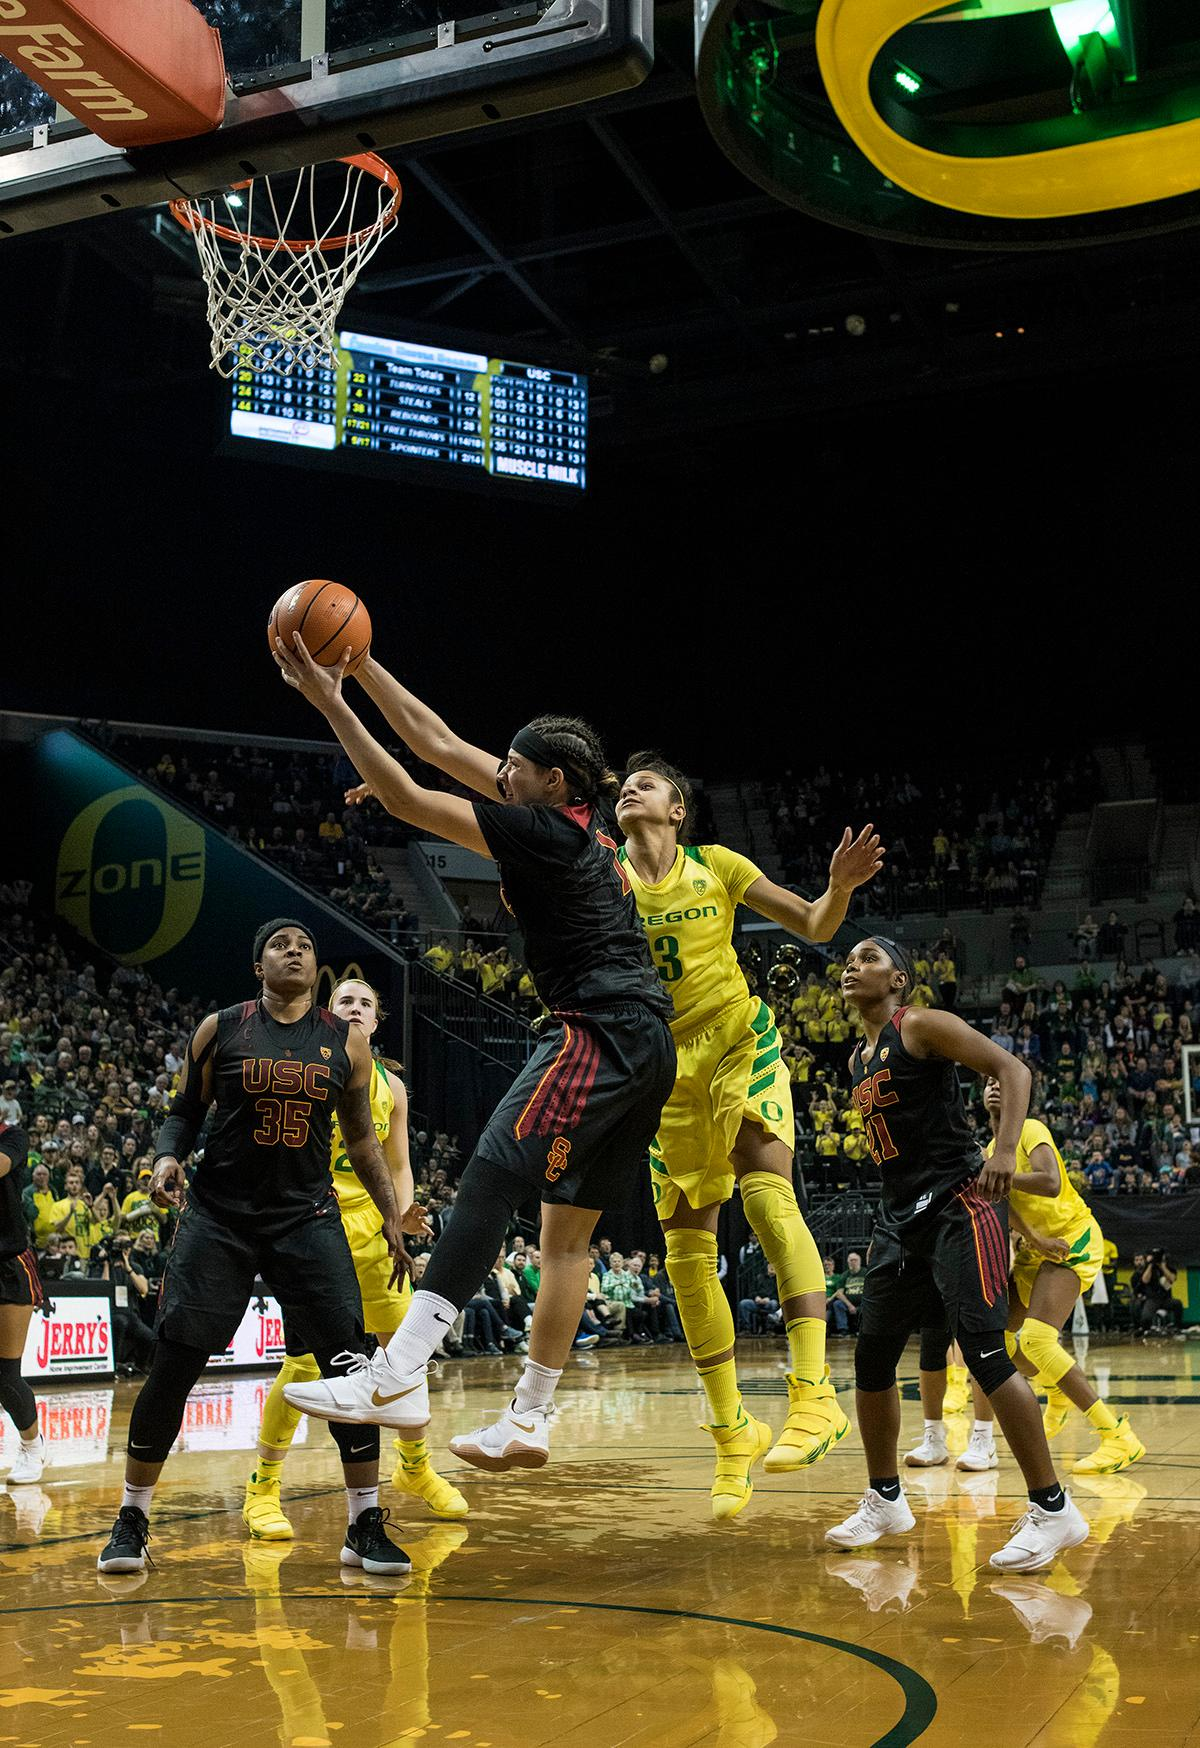 Oregon Ducks Justine Hall (#3) attempts to block a shot. The Oregon Ducks defeated the USC Trojans 80-74 on Friday at Matthew Knight Arena in a game that went into double overtime. Lexi Bando sealed the Ducks' victory by scoring a three-pointer in the closing of the game. Ruthy Hebard set a new NCAA record of 30 consecutive field goals in three straight games, the old record being 28. Ruthy Hebard got a double-double with 27 points and 10 rebounds, Mallory McGwire also had 10 rebounds. The Ducks had four players in double digits. The Ducks are now 24-4, 13-2 in the Pac-12, and are tied for first with Stanford. Photo By Rhianna Gelhart, Oregon News Lab